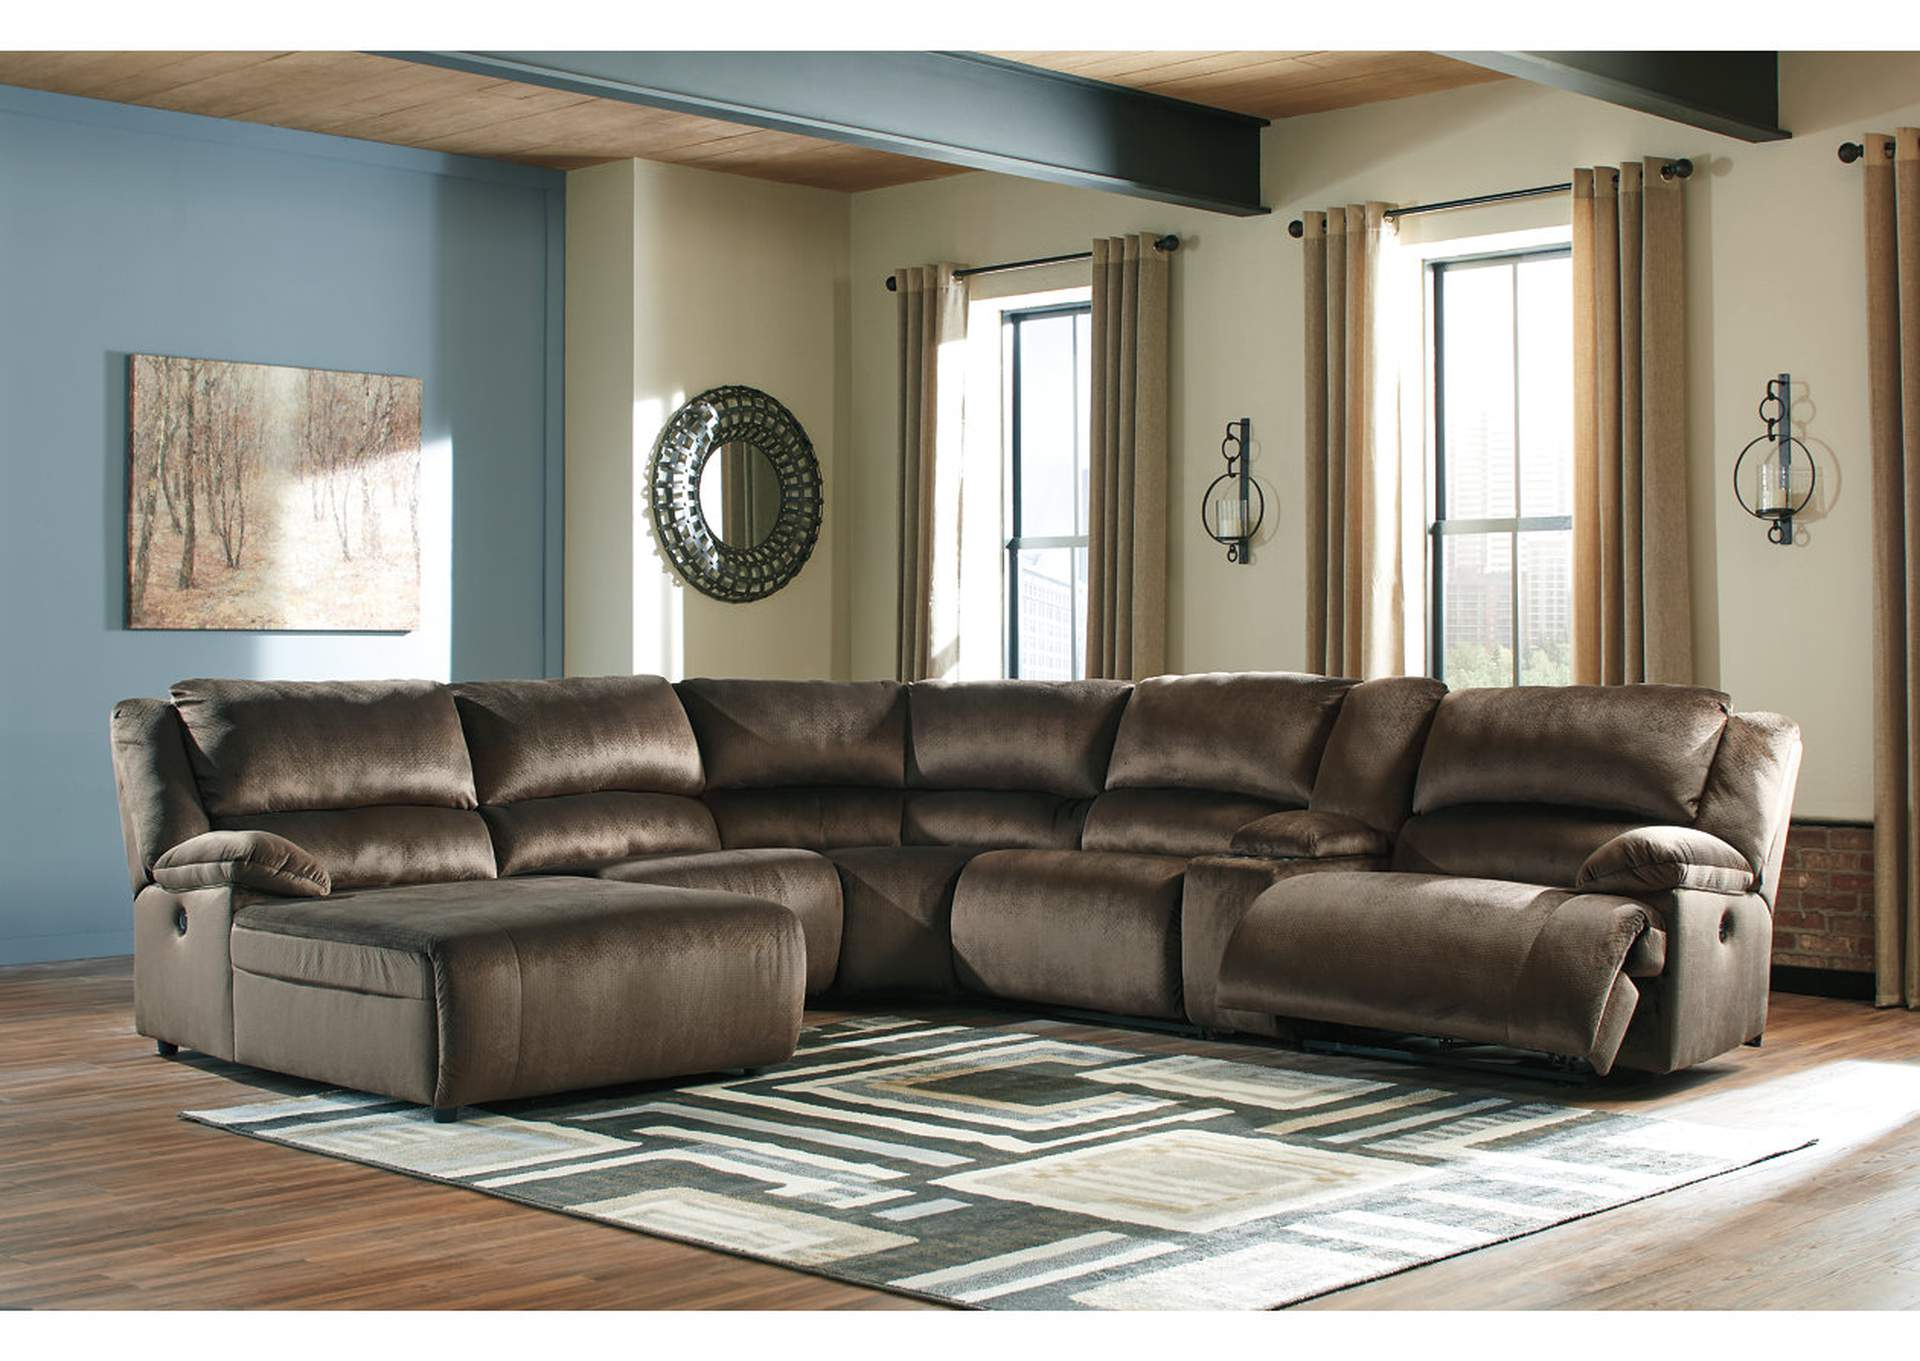 Clonmel Chocolate LAF Chaise Sectional w/Console,Signature Design By Ashley